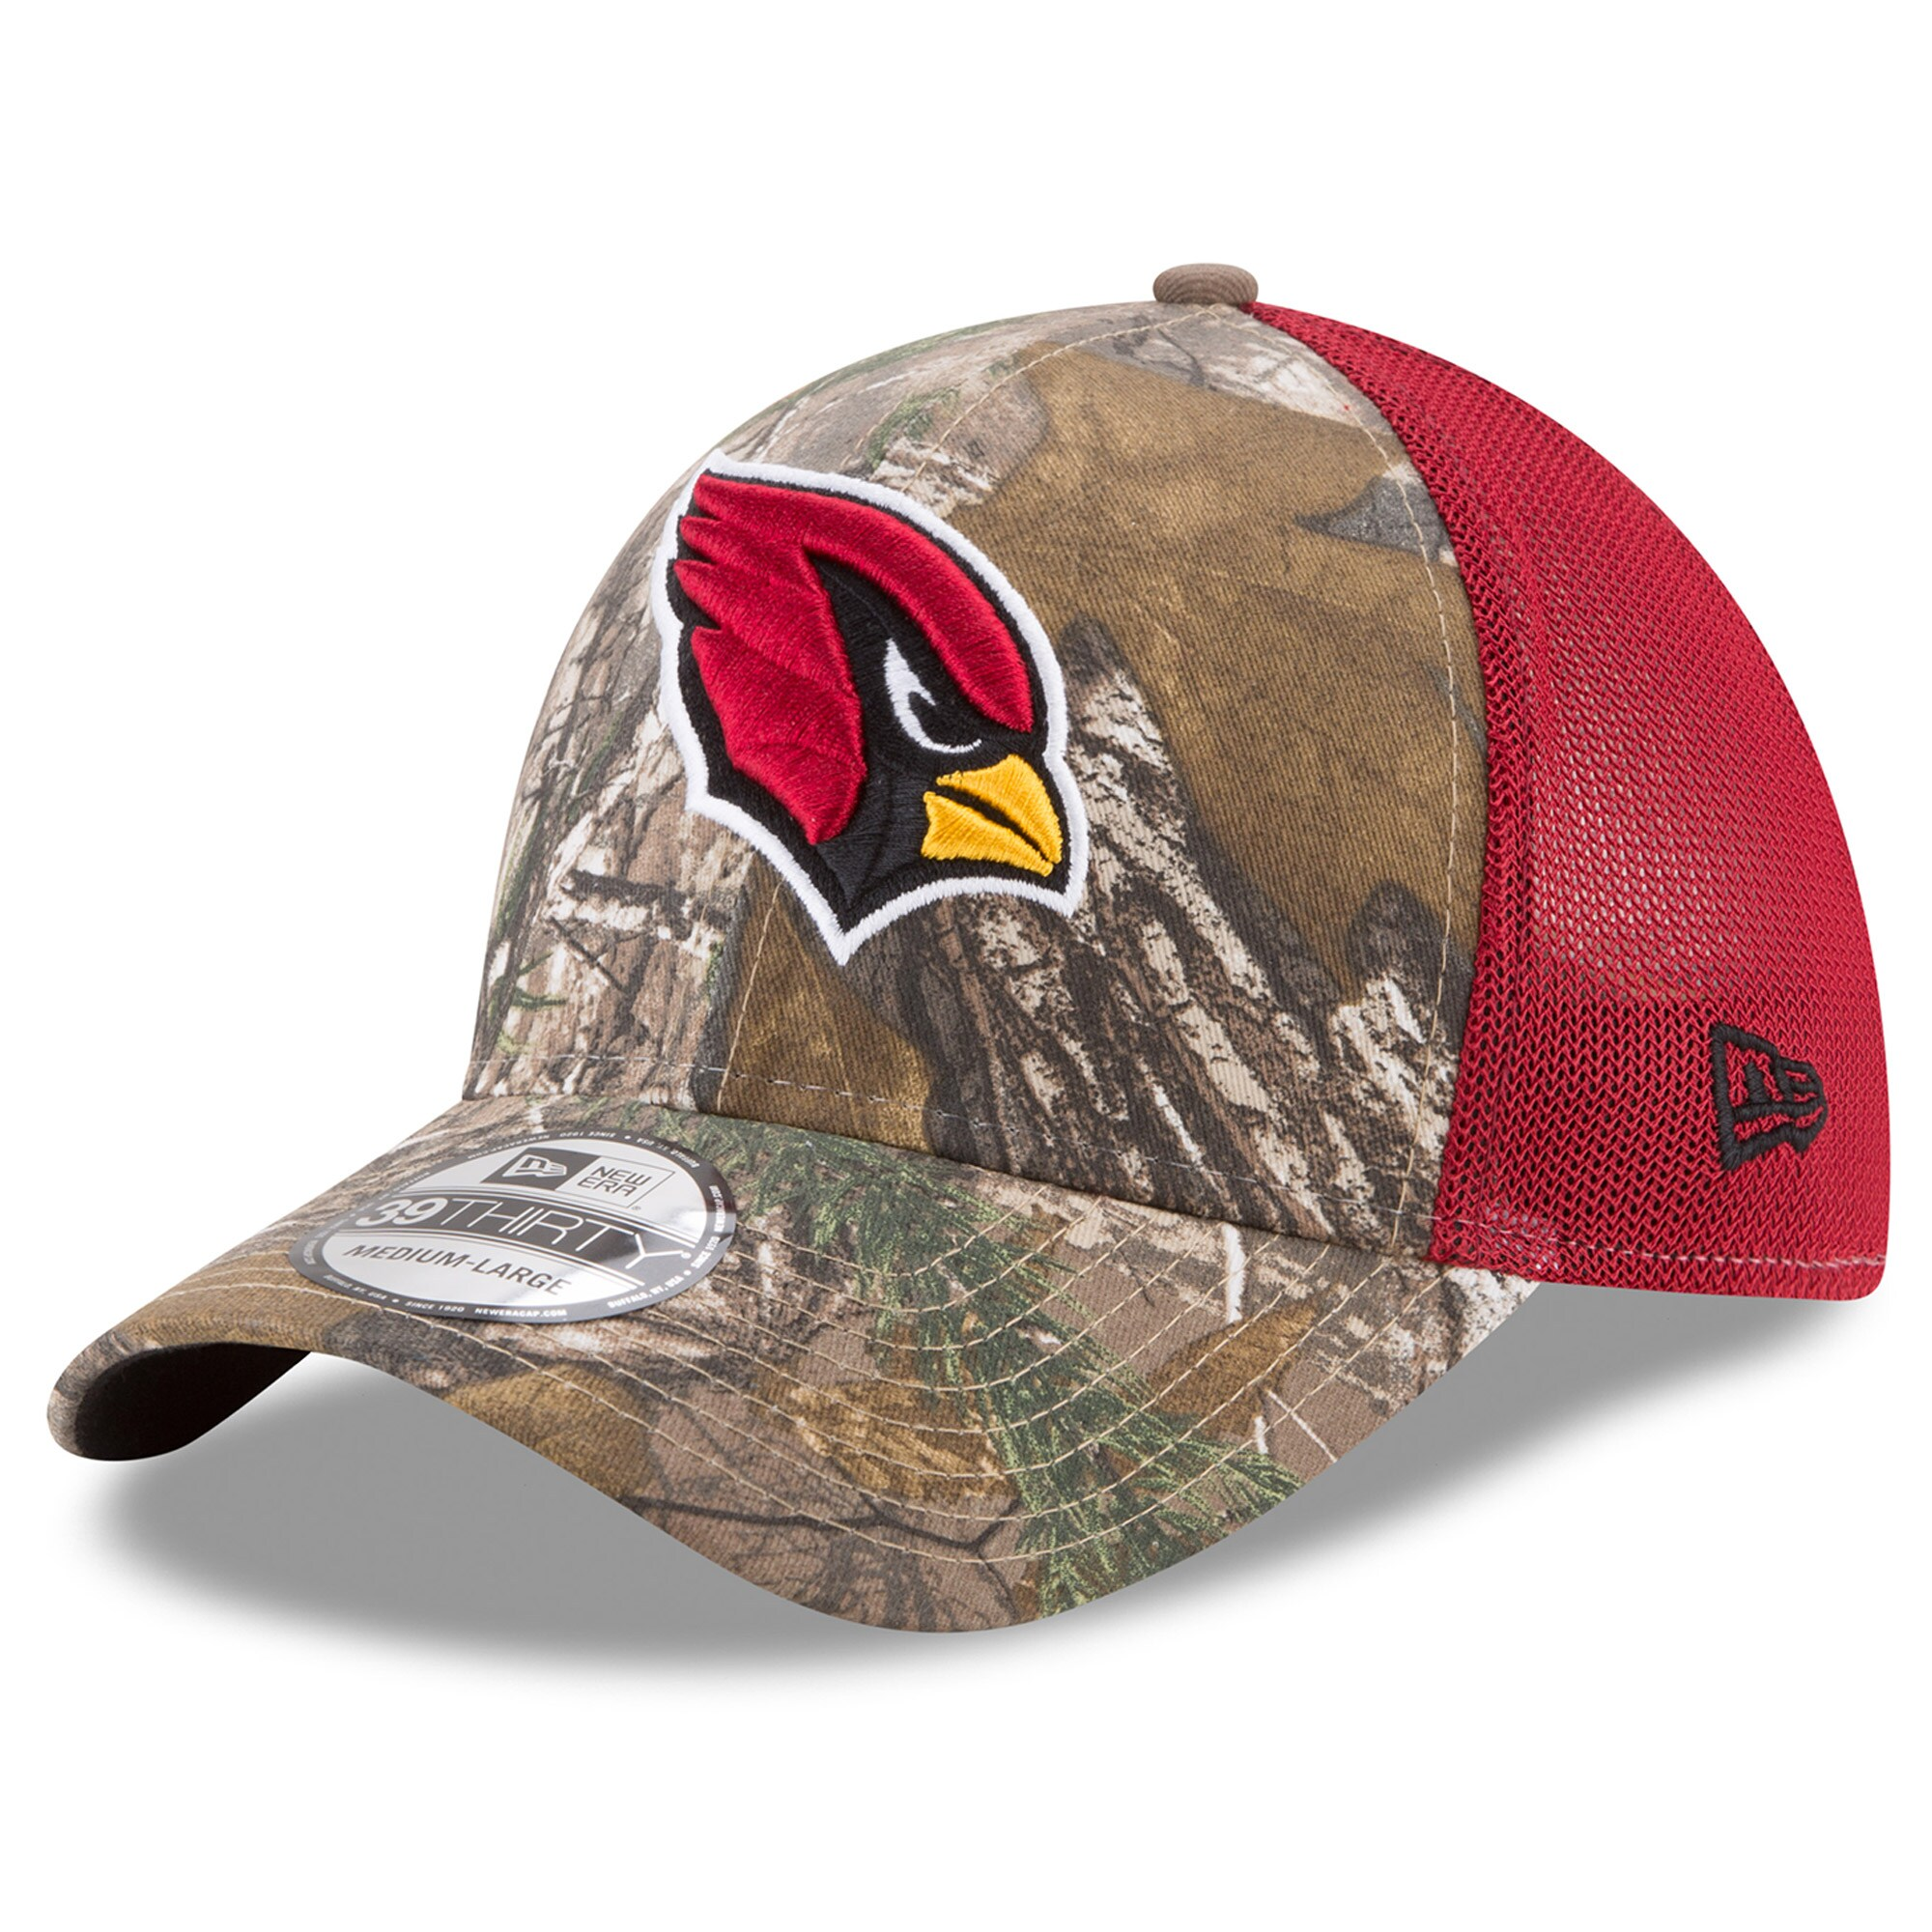 Arizona Cardinals New Era Trucker 39THIRTY Flex Hat - Realtree Camo/Cardinal